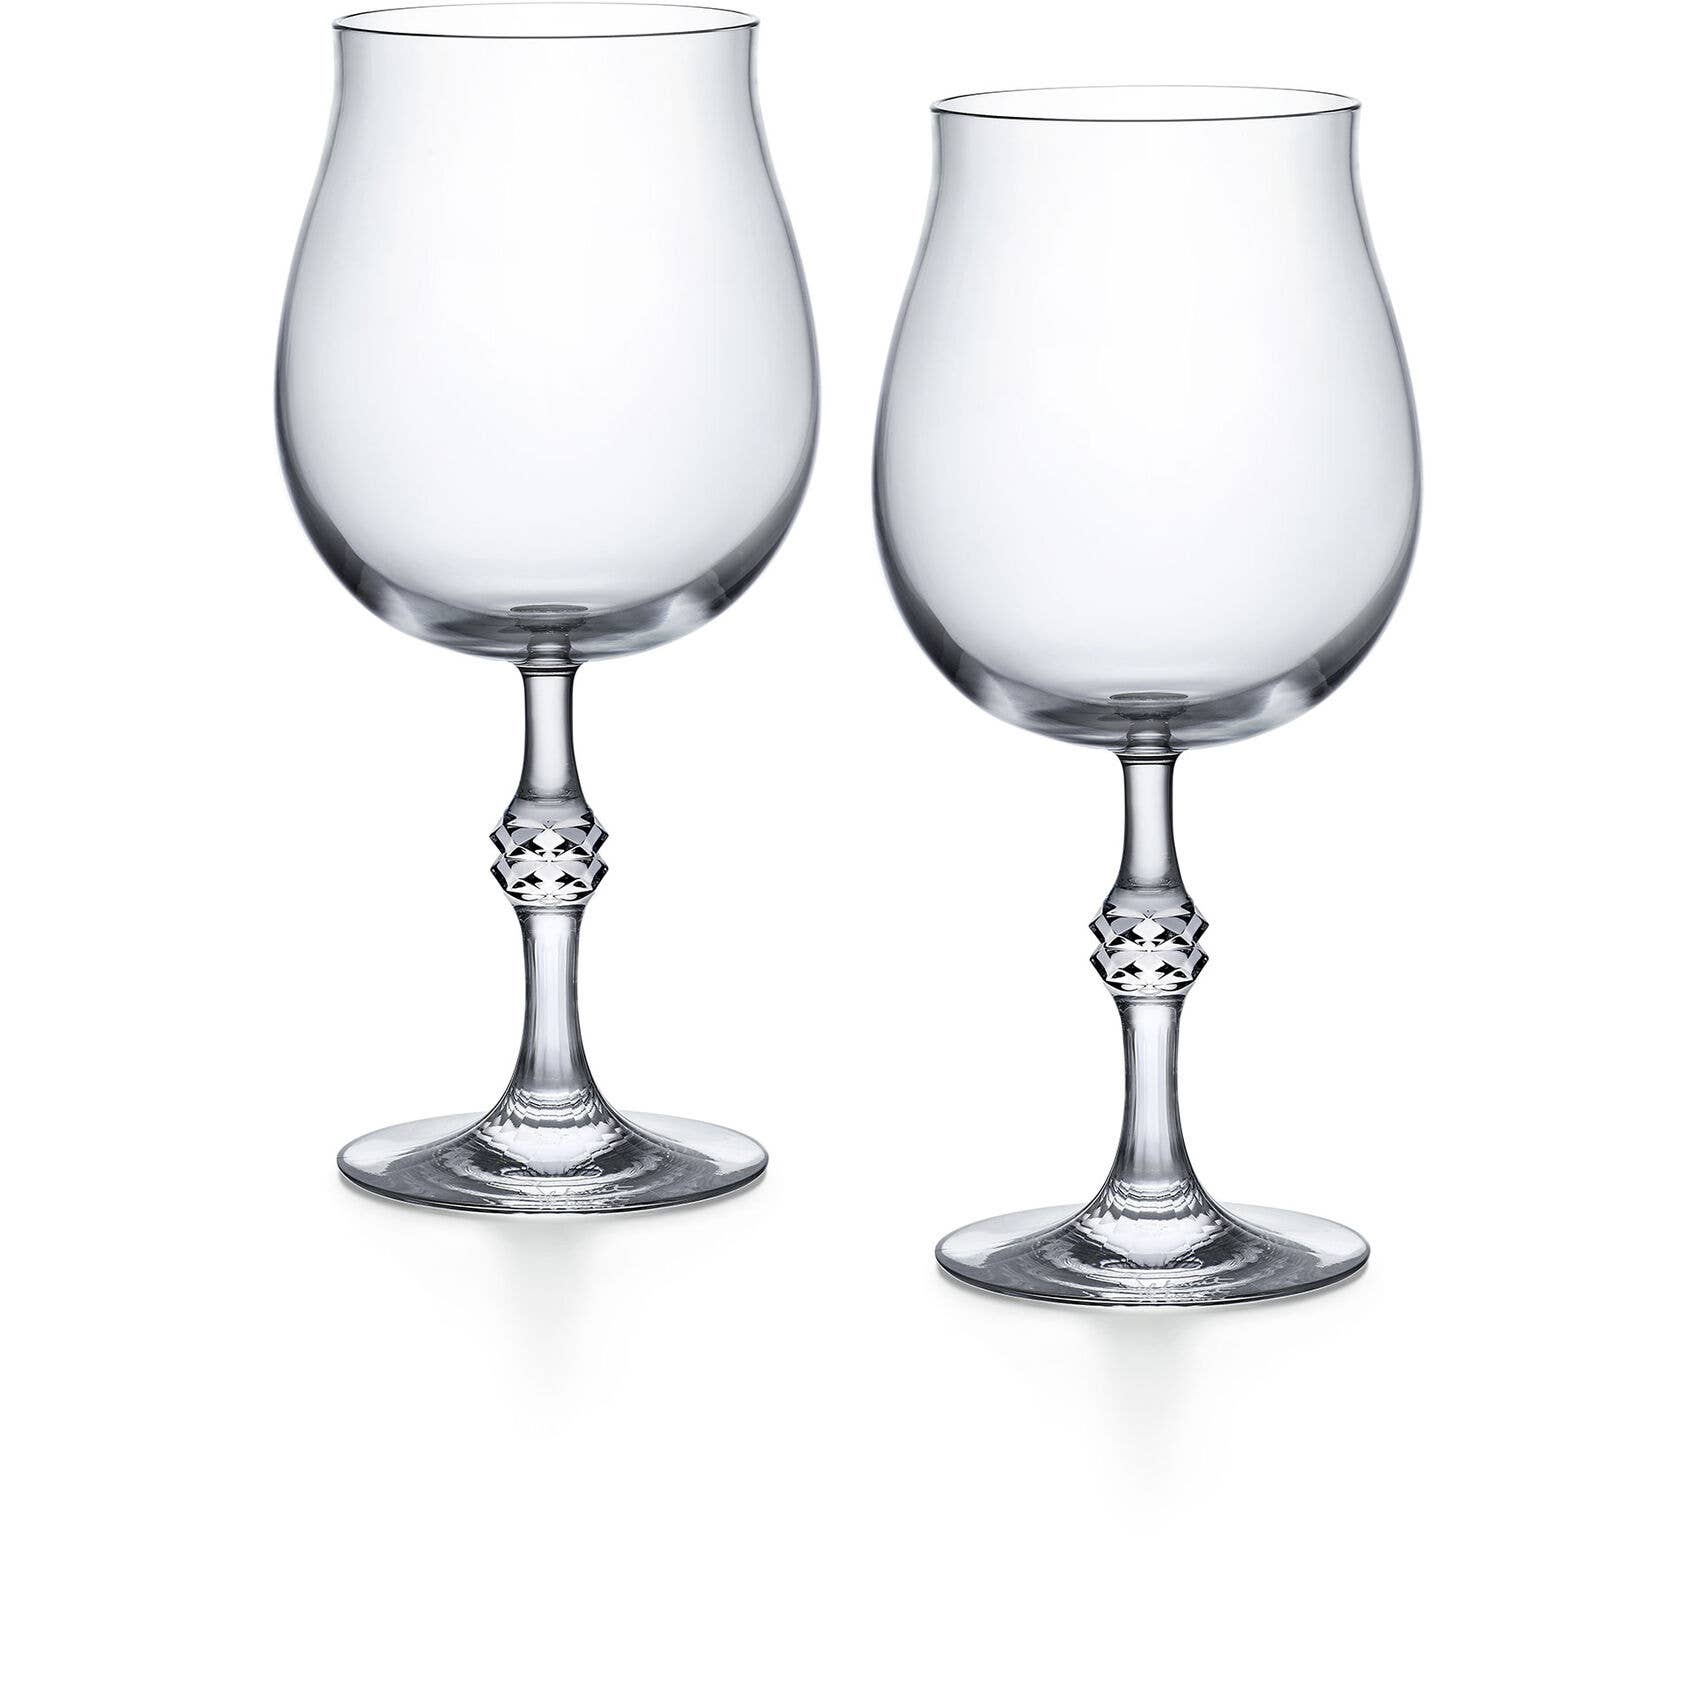 JCB Passion Wine, set of two, with detailed cuts on the stem